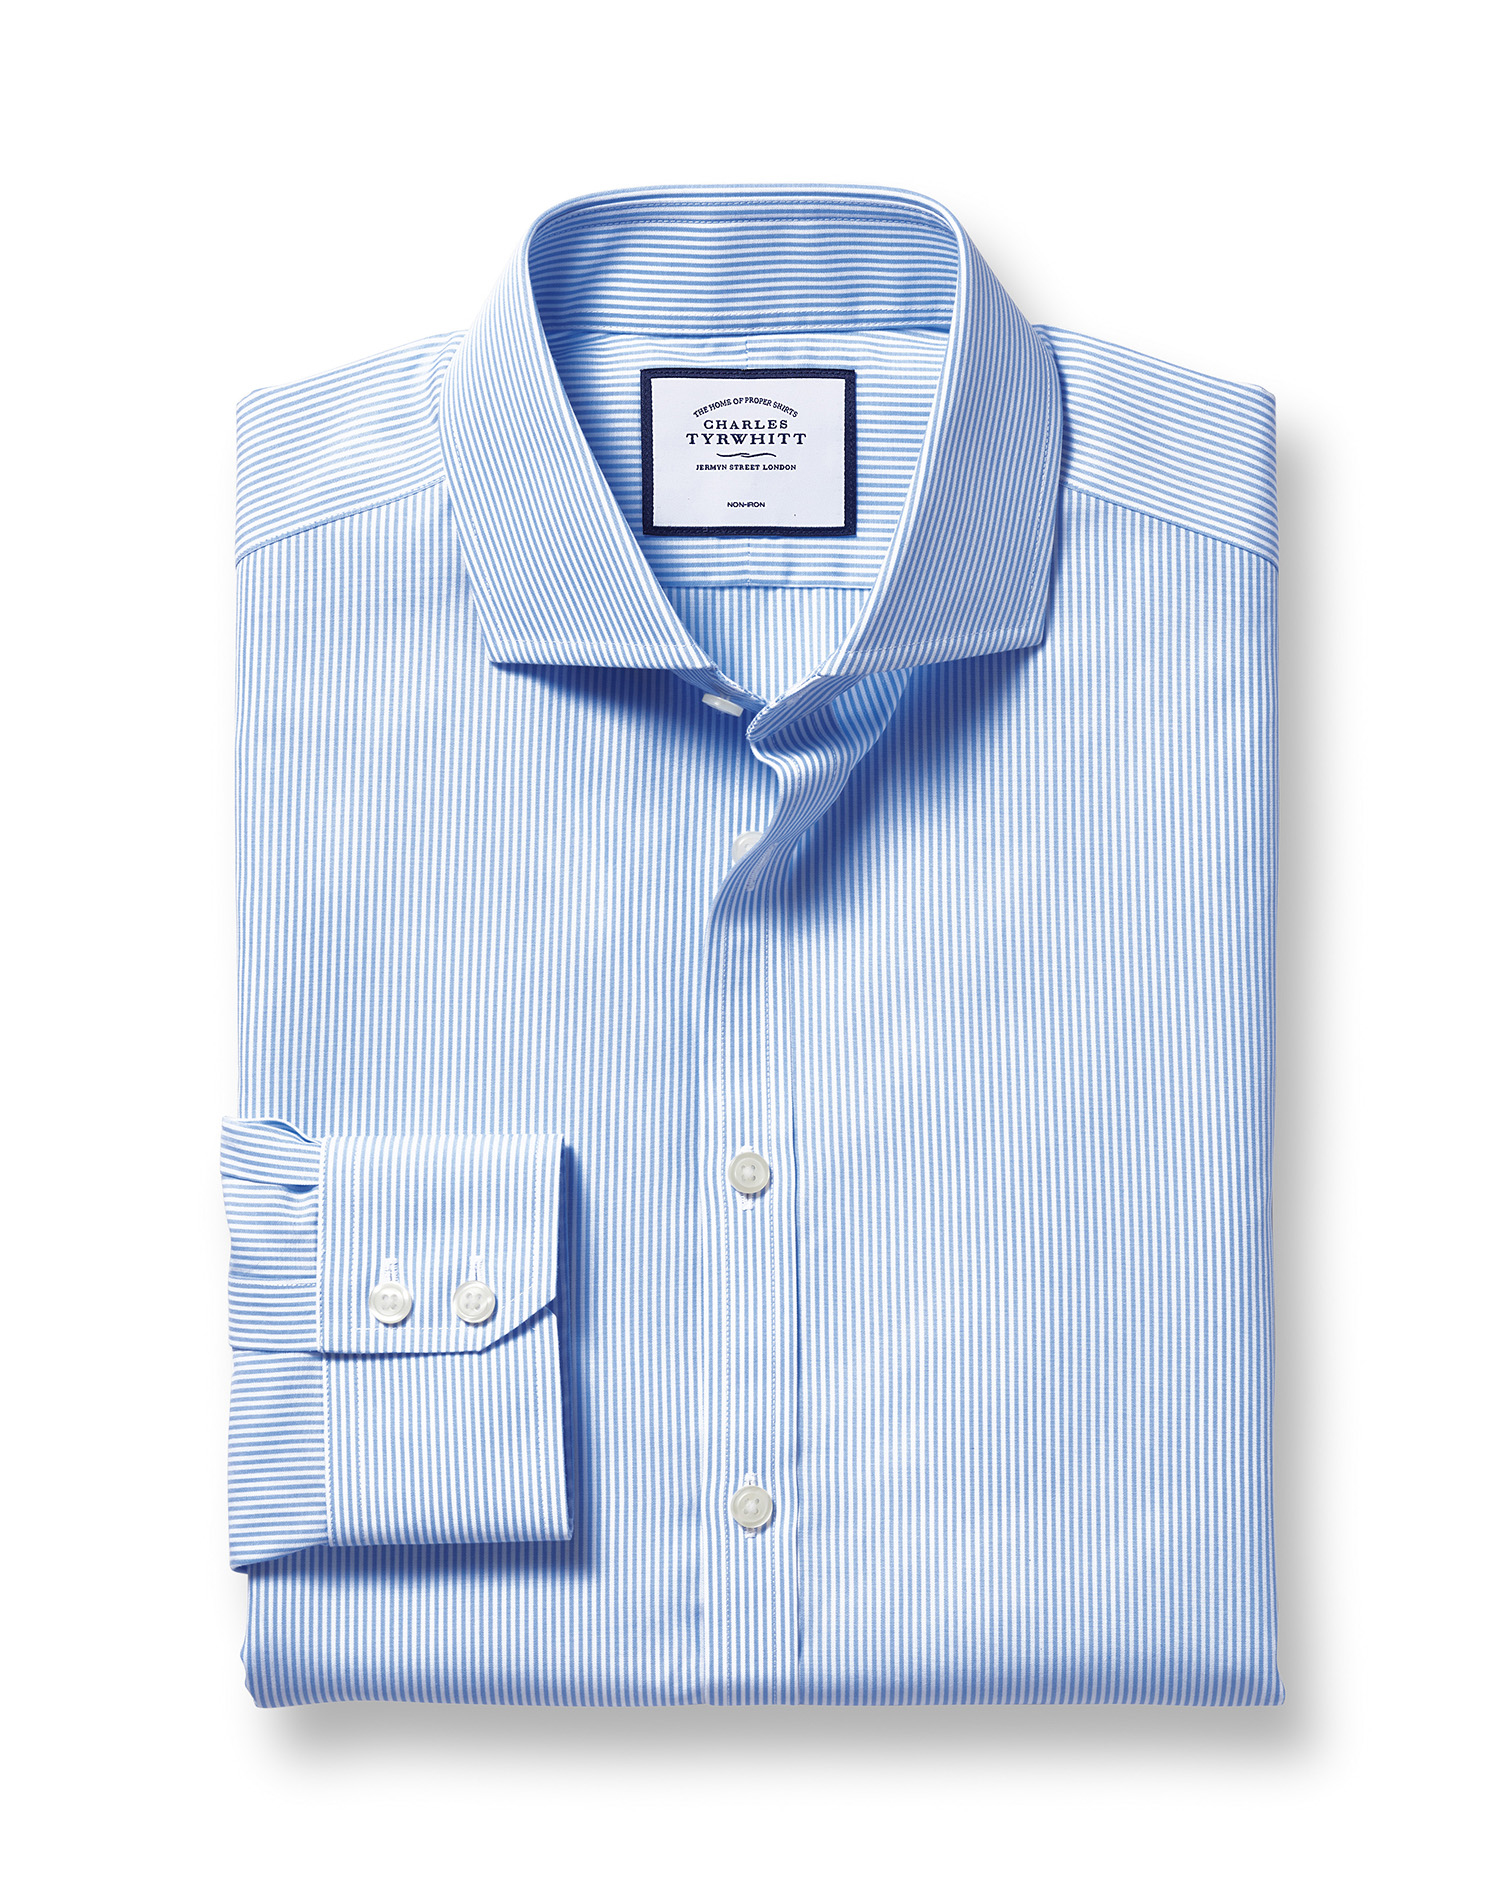 Slim Fit Cutaway Non-Iron Bengal Stripe Sky Blue Cotton Formal Shirt Double Cuff Size 16/34 by Charl